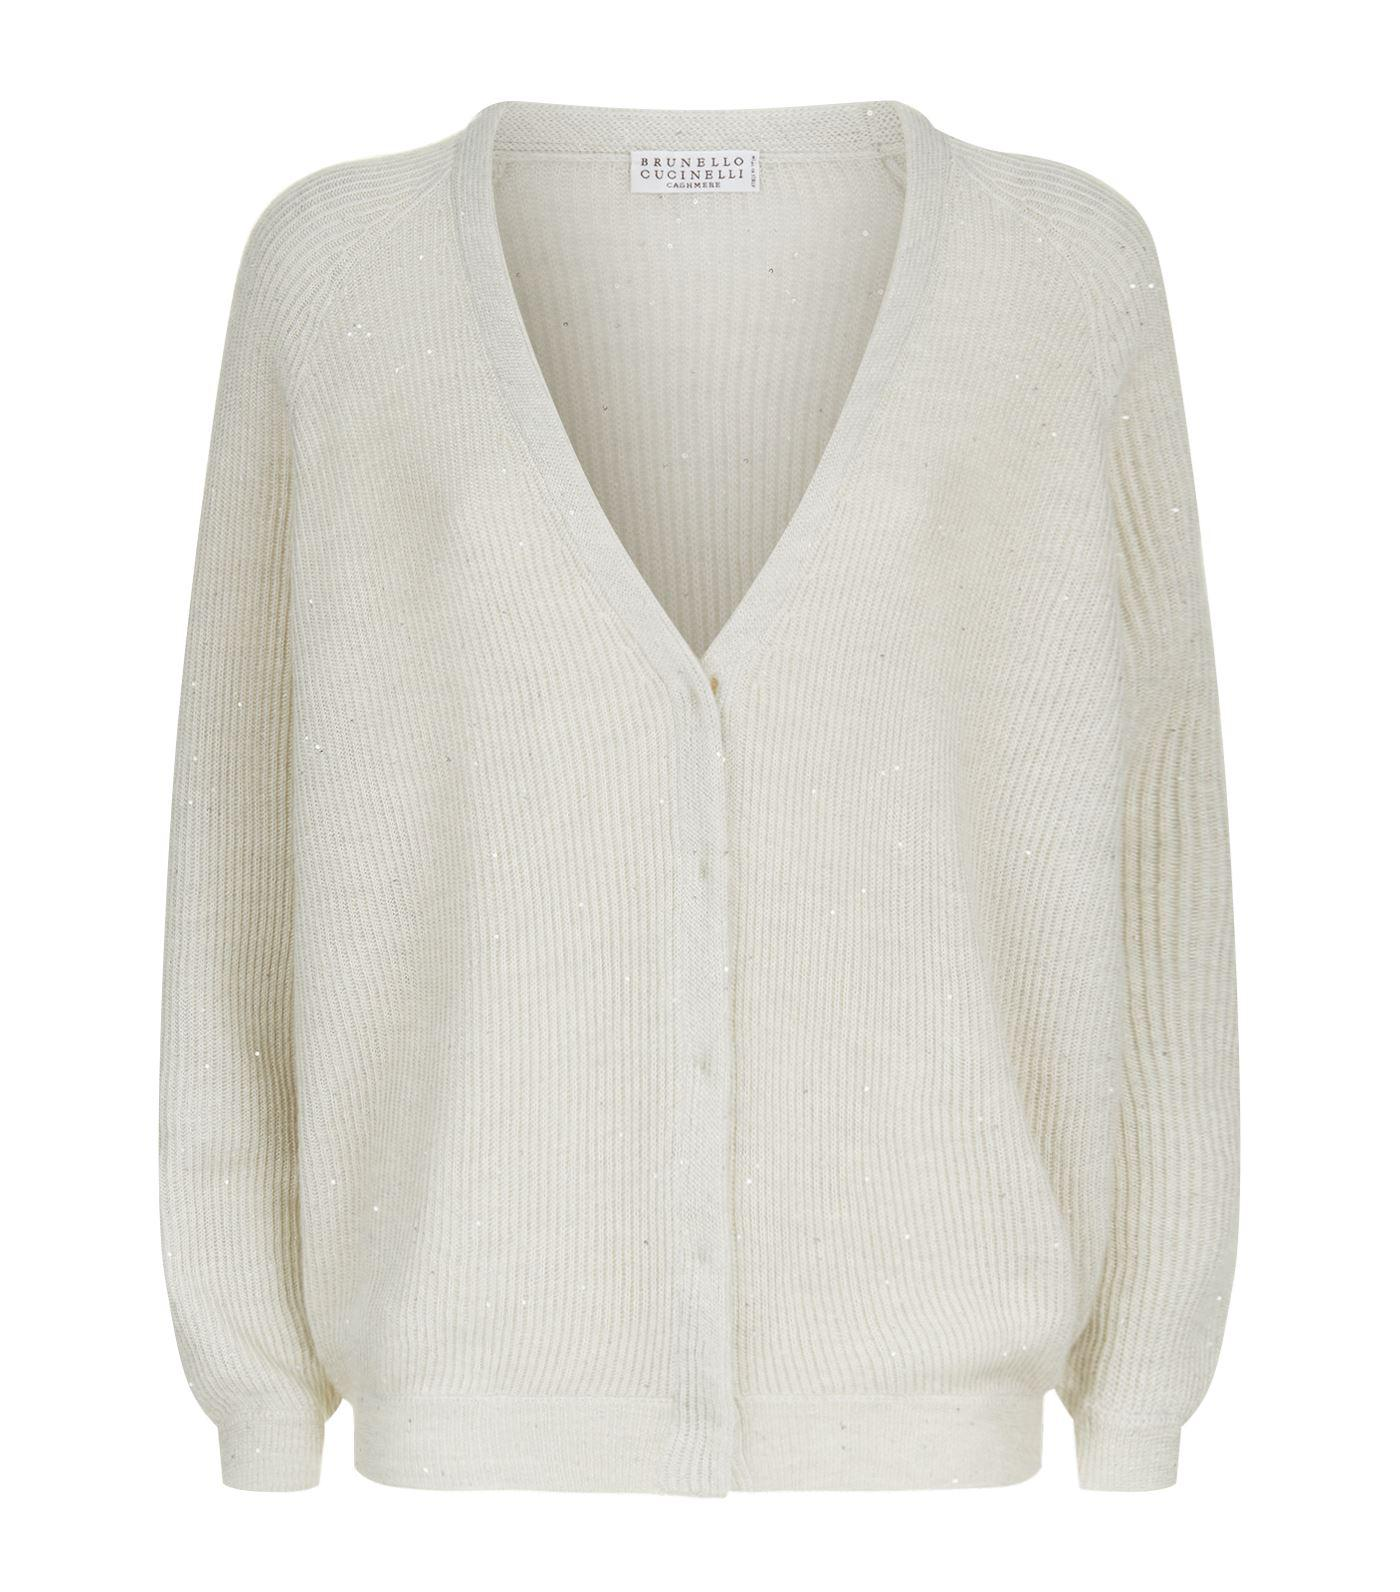 Brunello cucinelli Sequin Embellished Button Down Cardigan in Gray ...